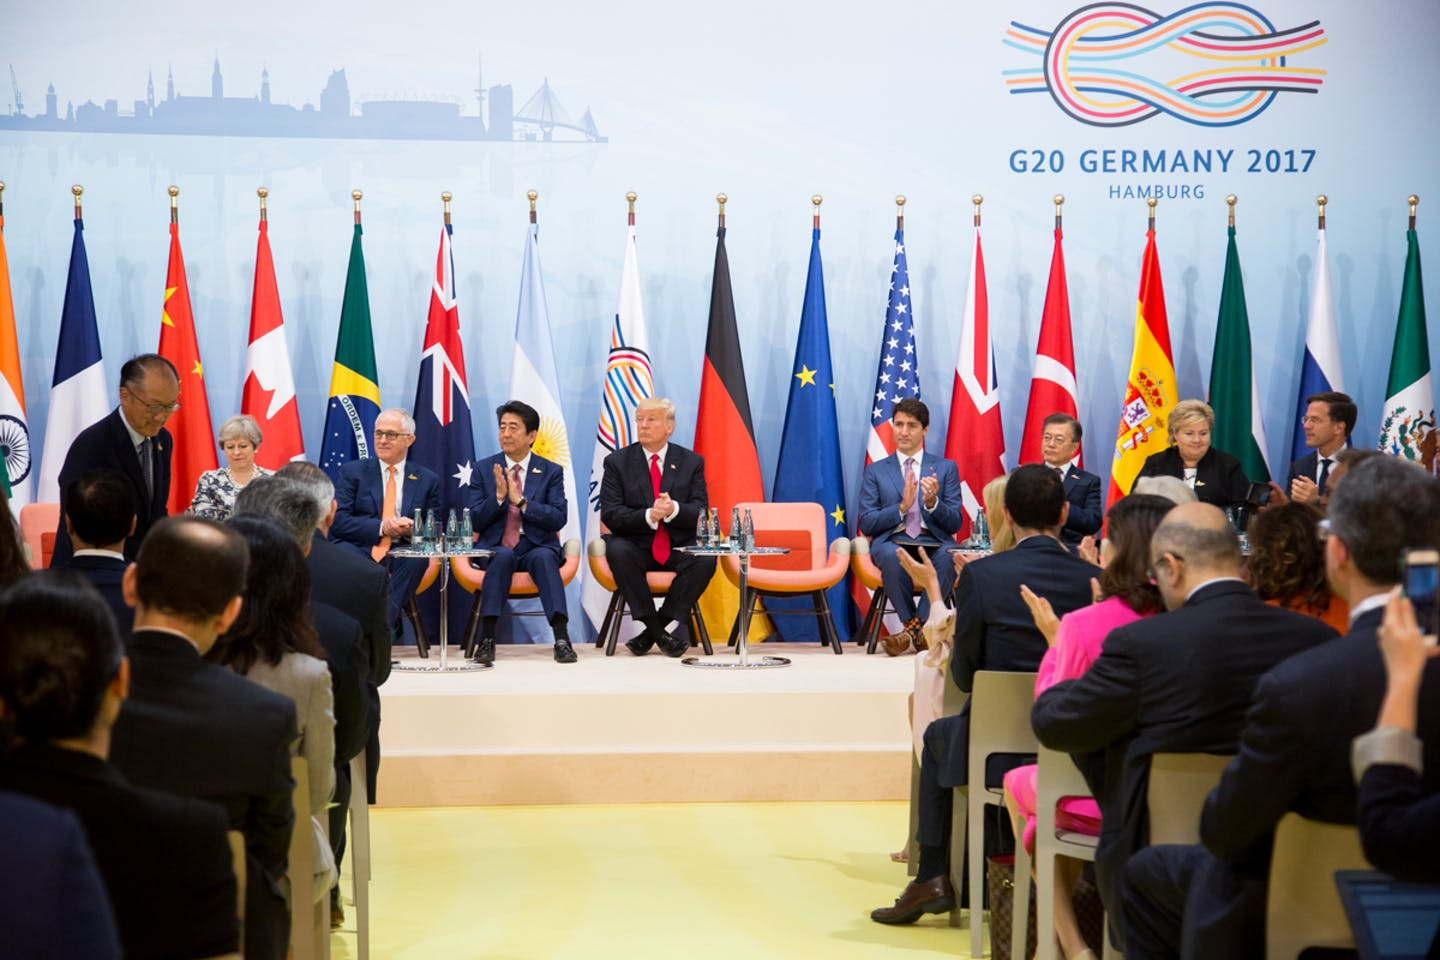 Trump at G20 Germany